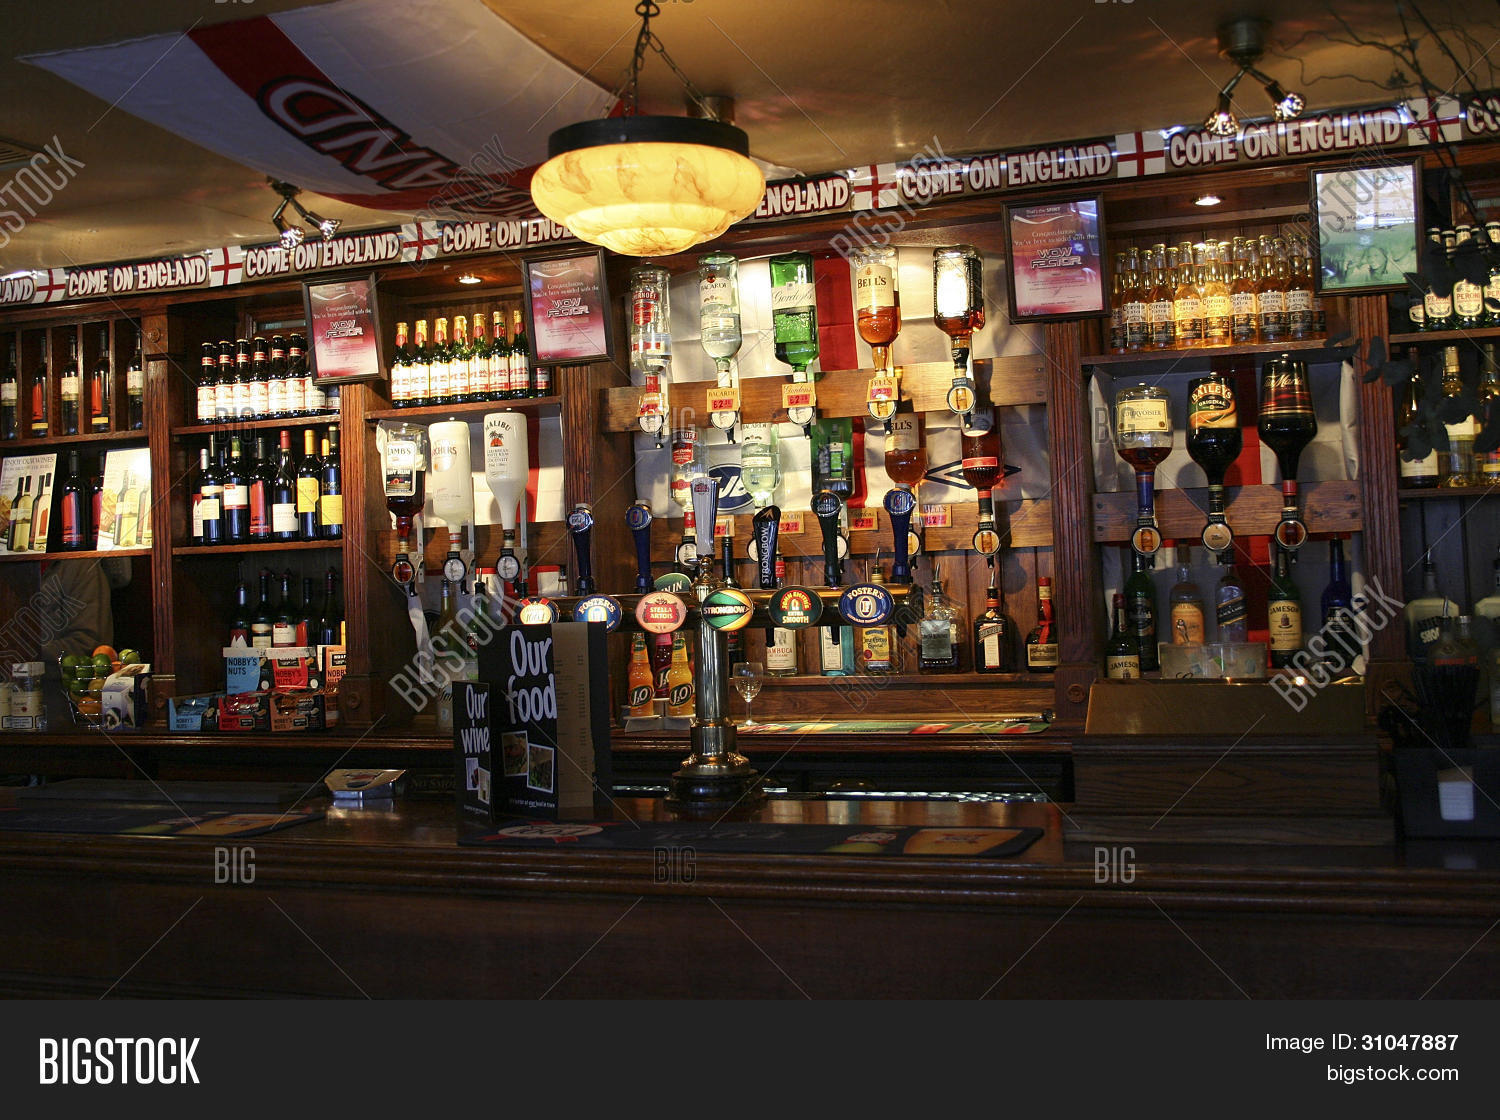 Inside View English Image & Photo (Free Trial) | Bigstock